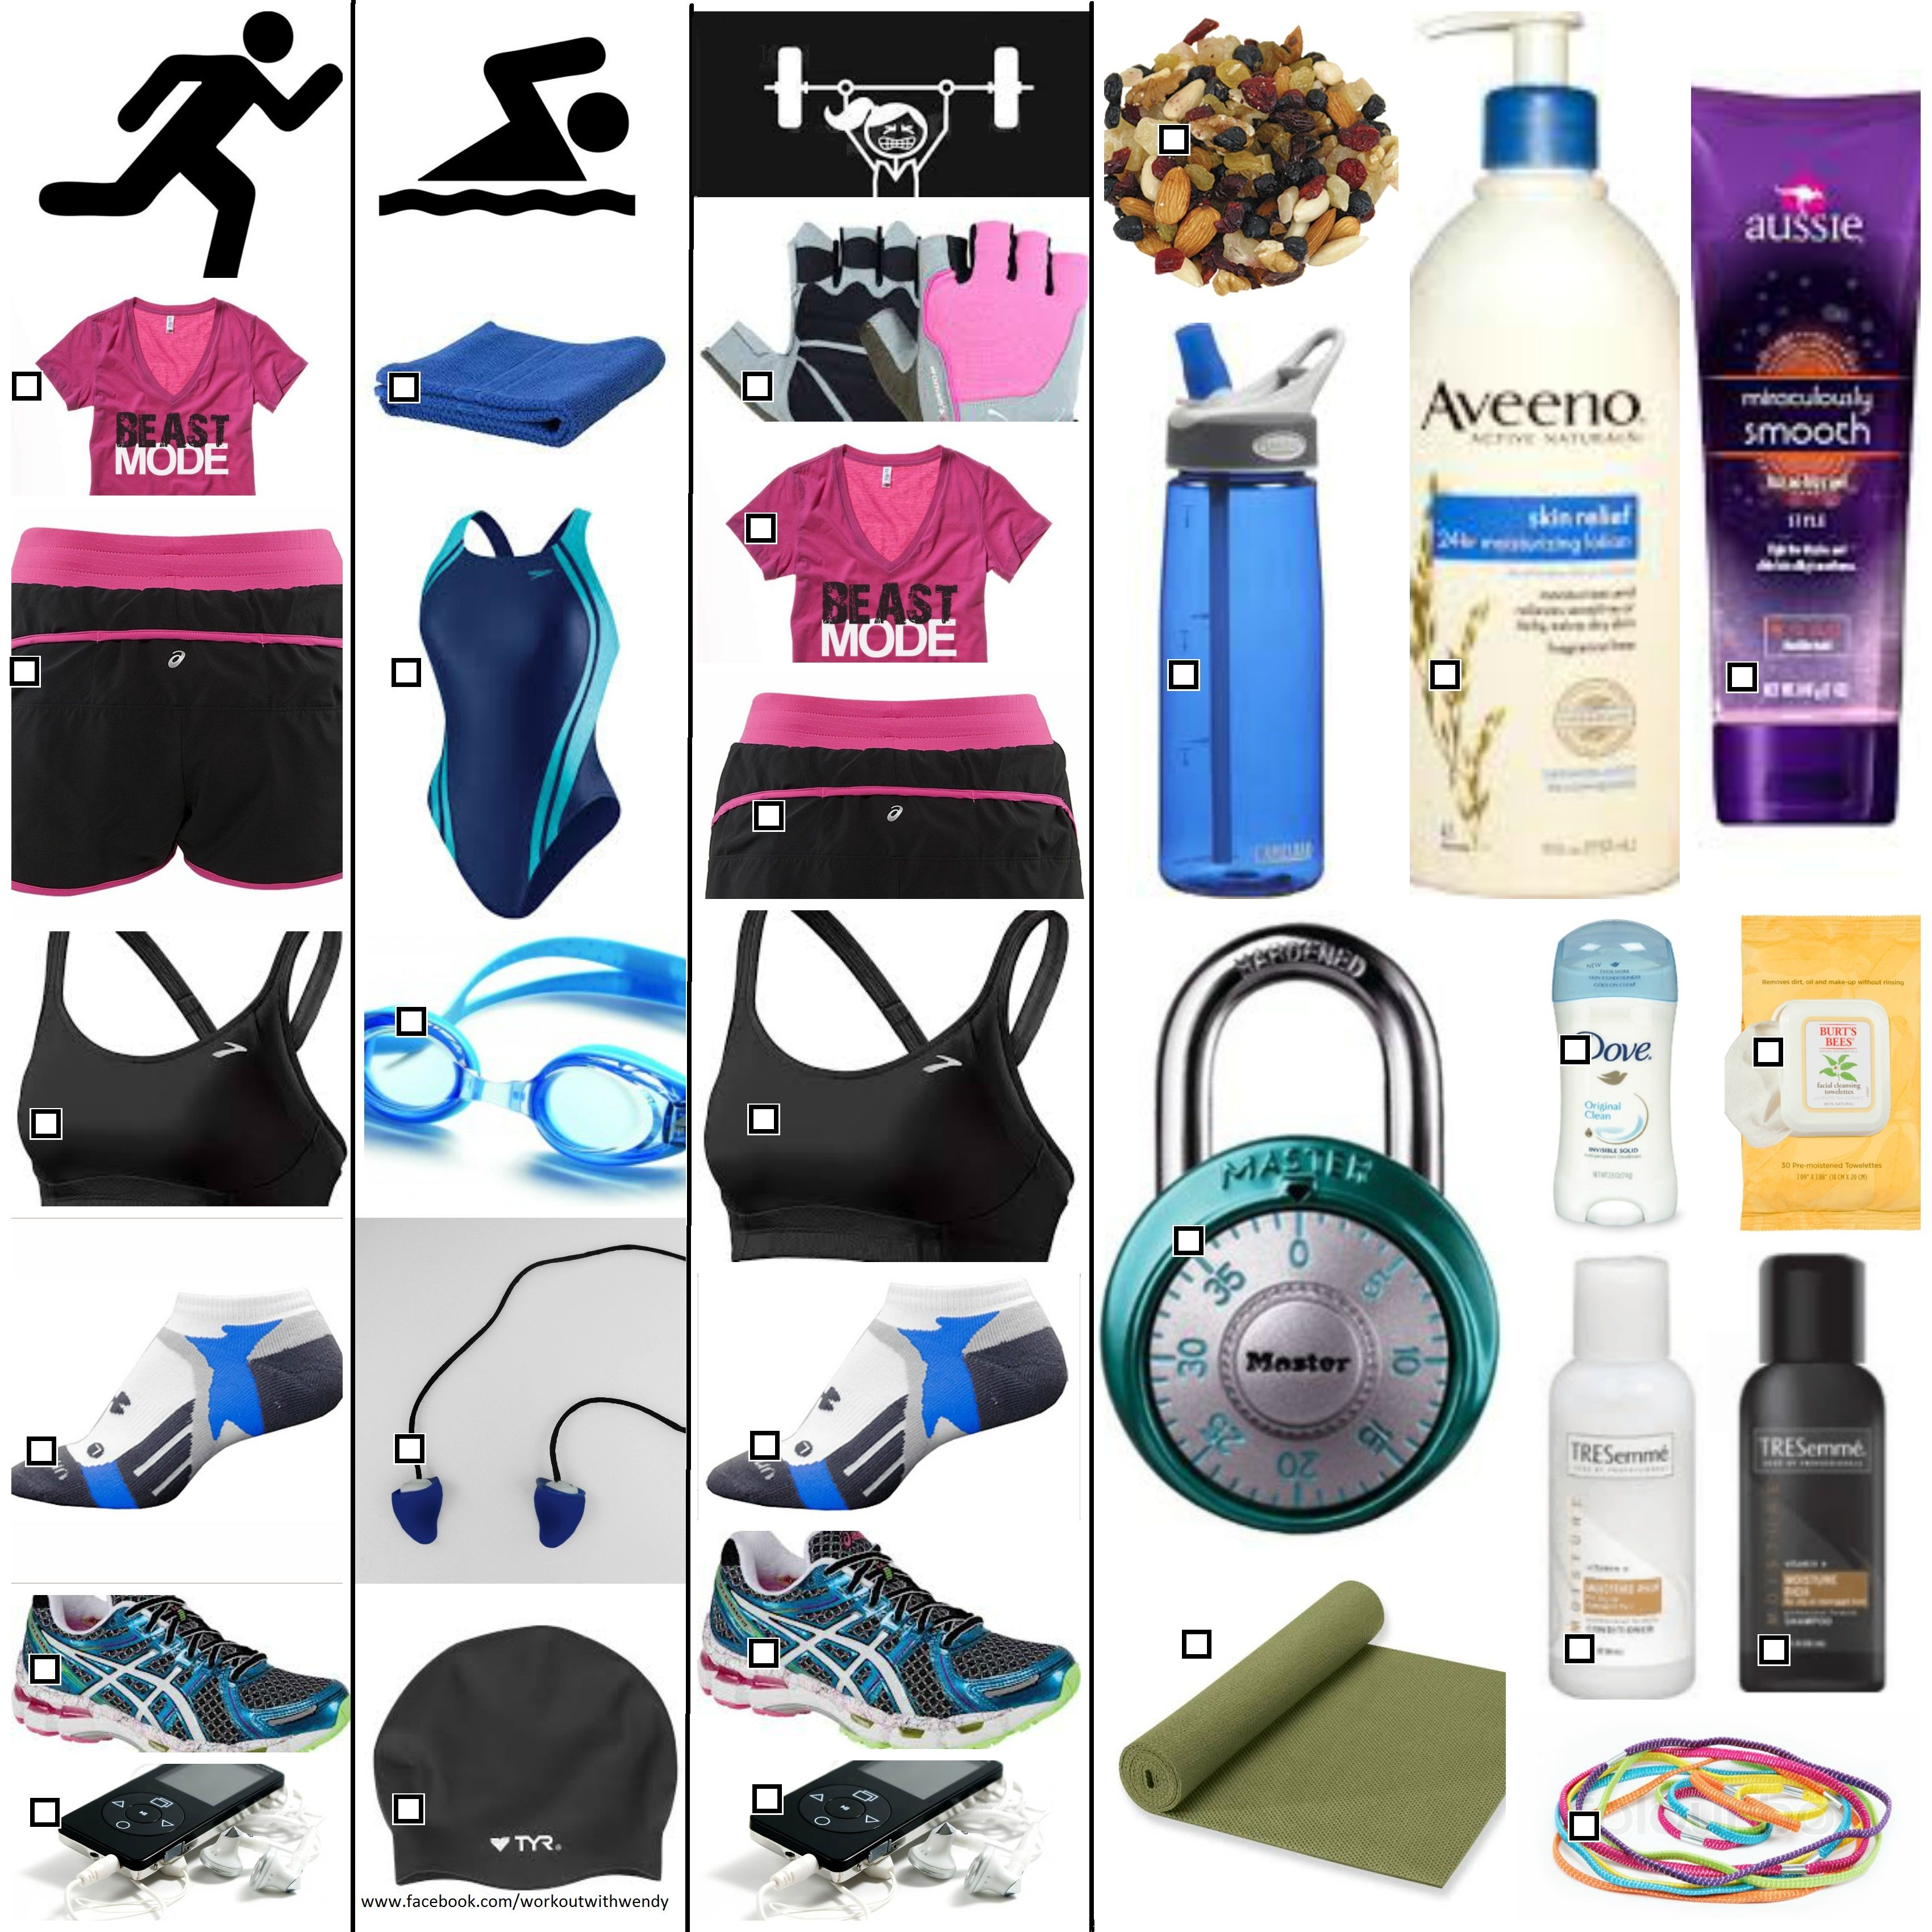 Gym bag essentials check list work out items for running